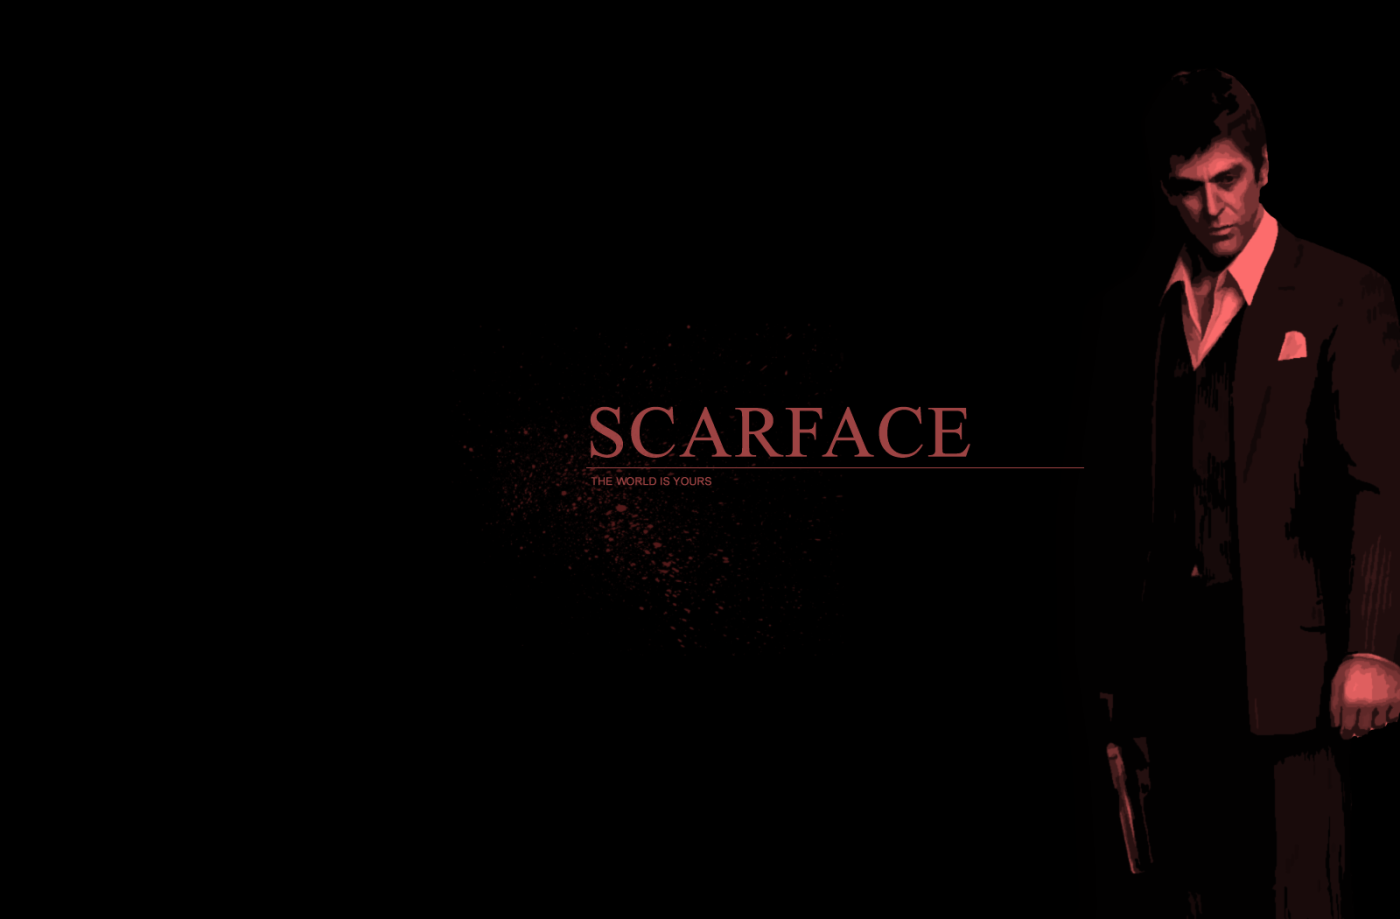 Scarface Wallpapers 1400x919